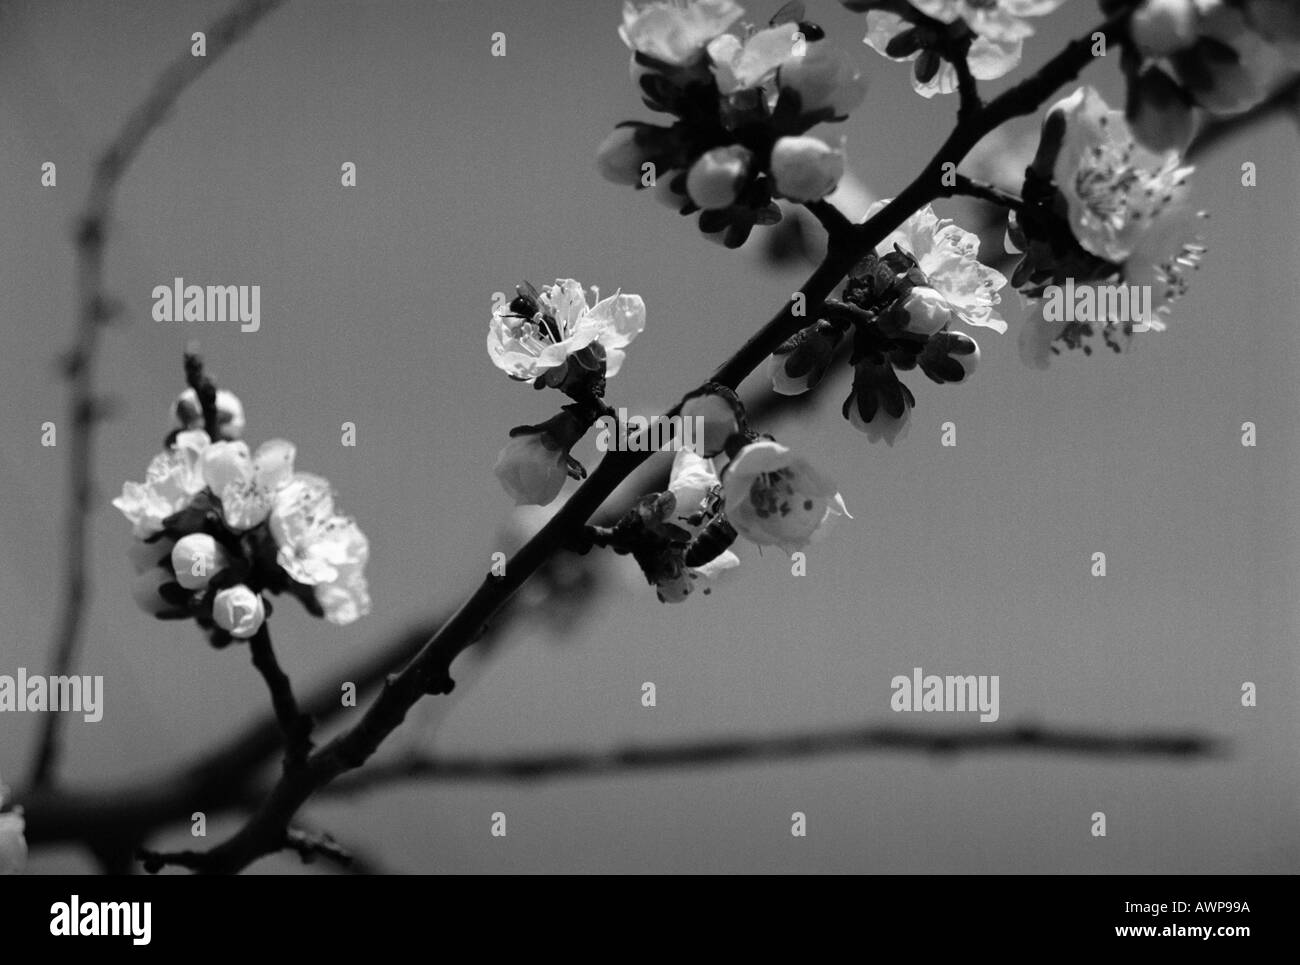 Blossomed cherry tree twig twig bud embryo burgeon white apricot beauty evening country  focus bee pistil stamen nature flower - Stock Image